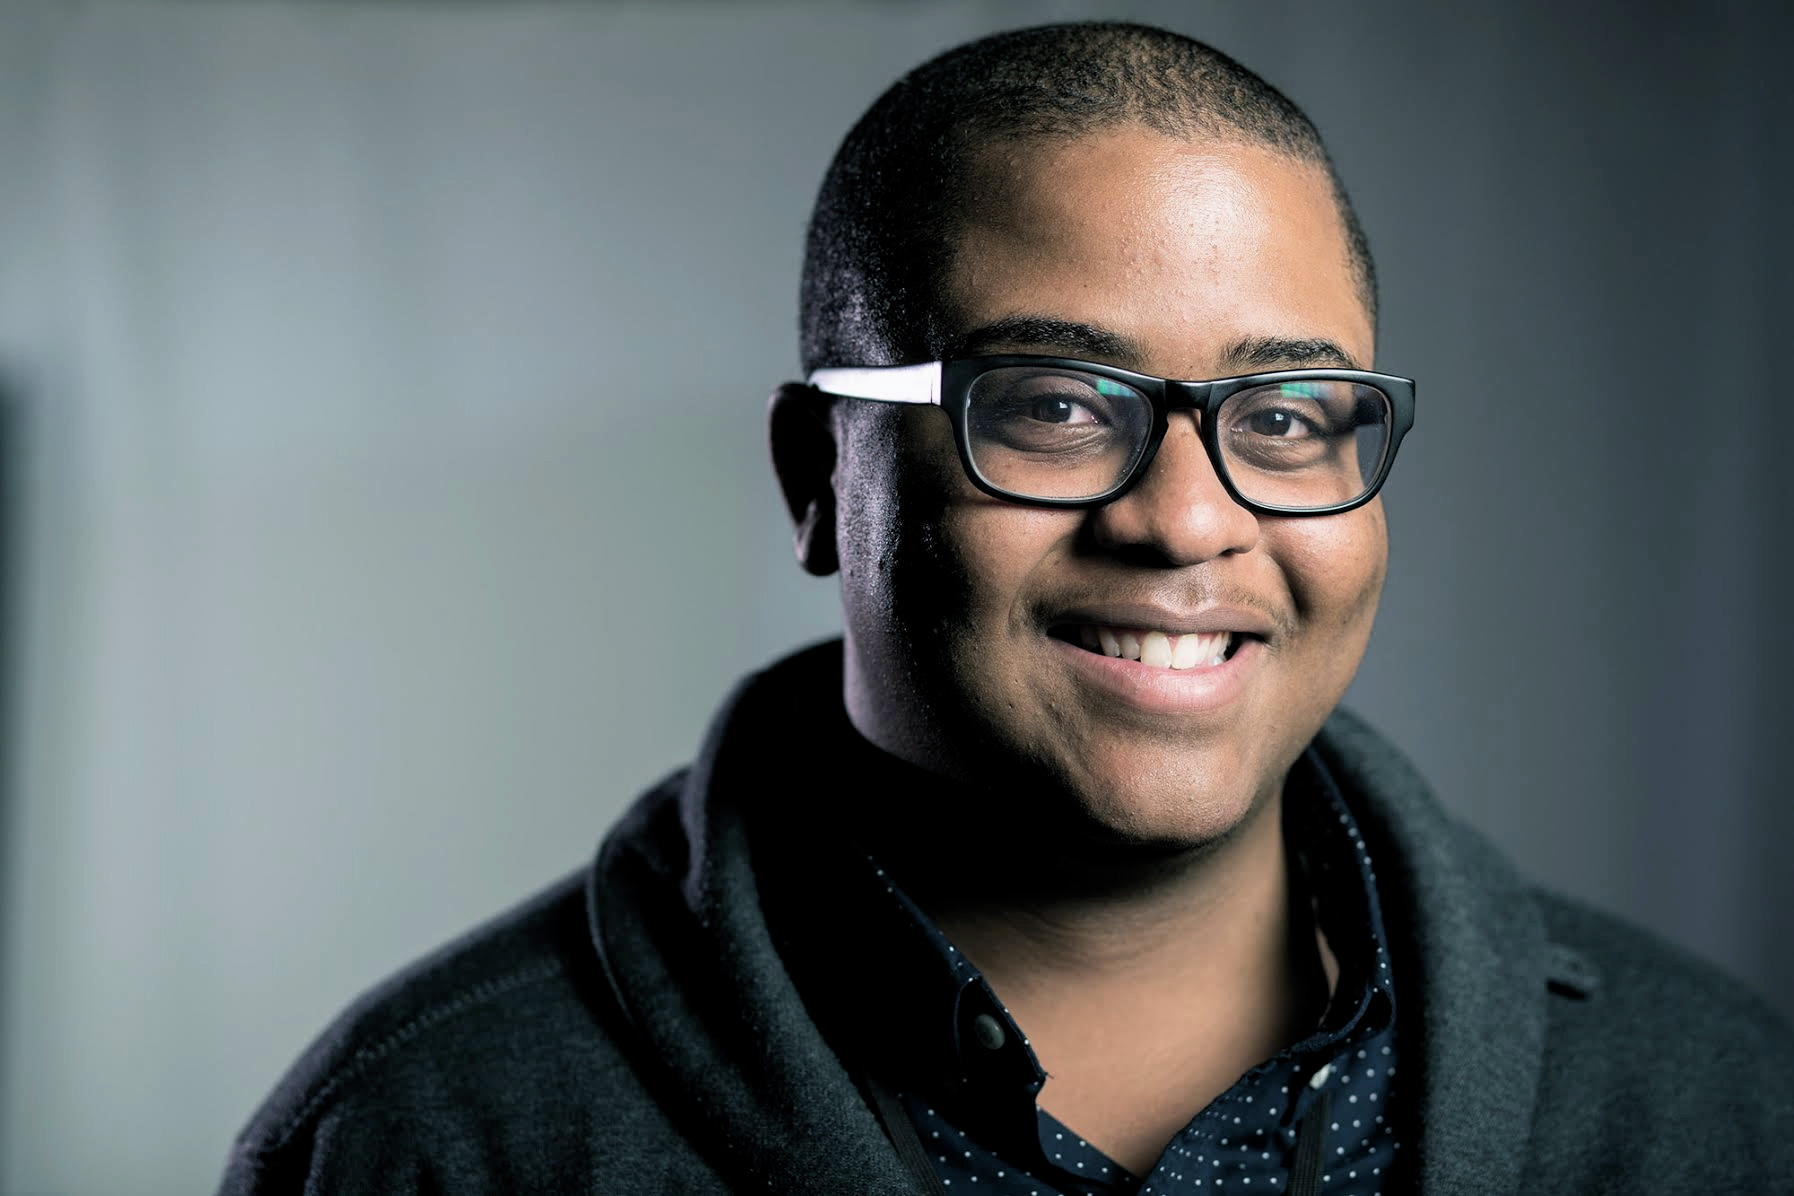 Aaron Edwards will be reading at  The Difficult to Name Reading Series  on May 30 at Brit Pack.